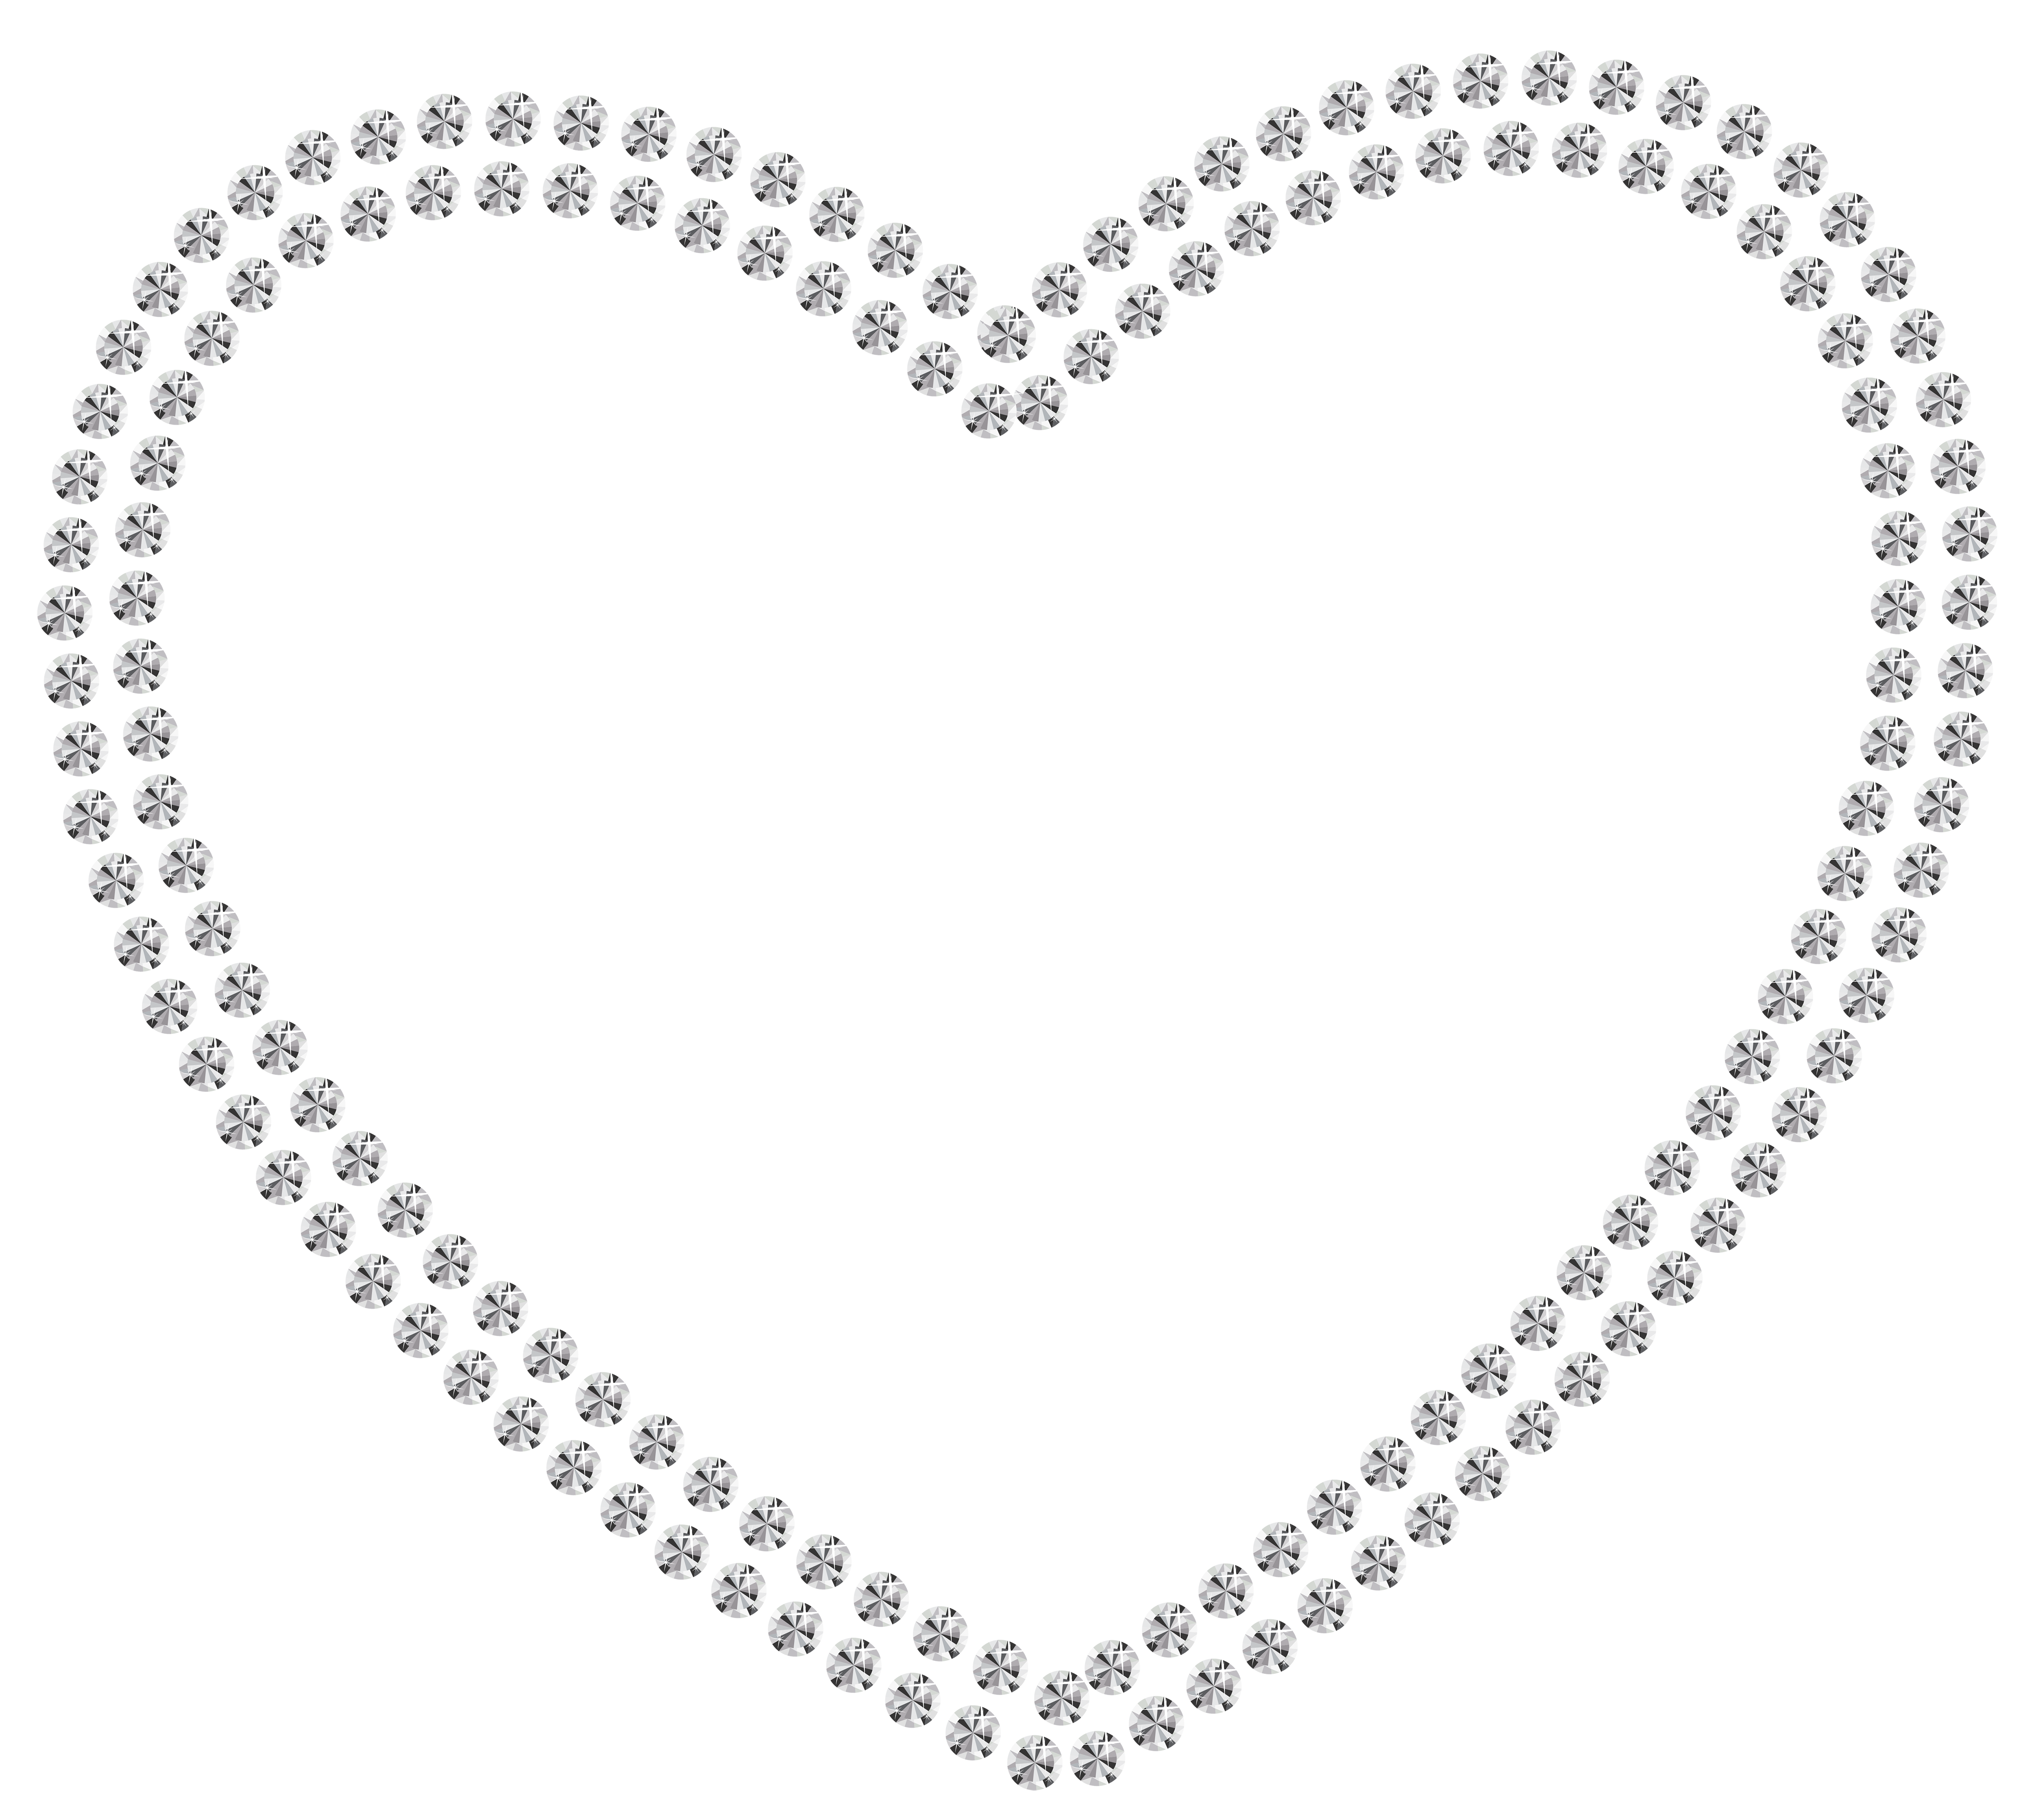 White diamond heart png. Hearts clipart vegetable